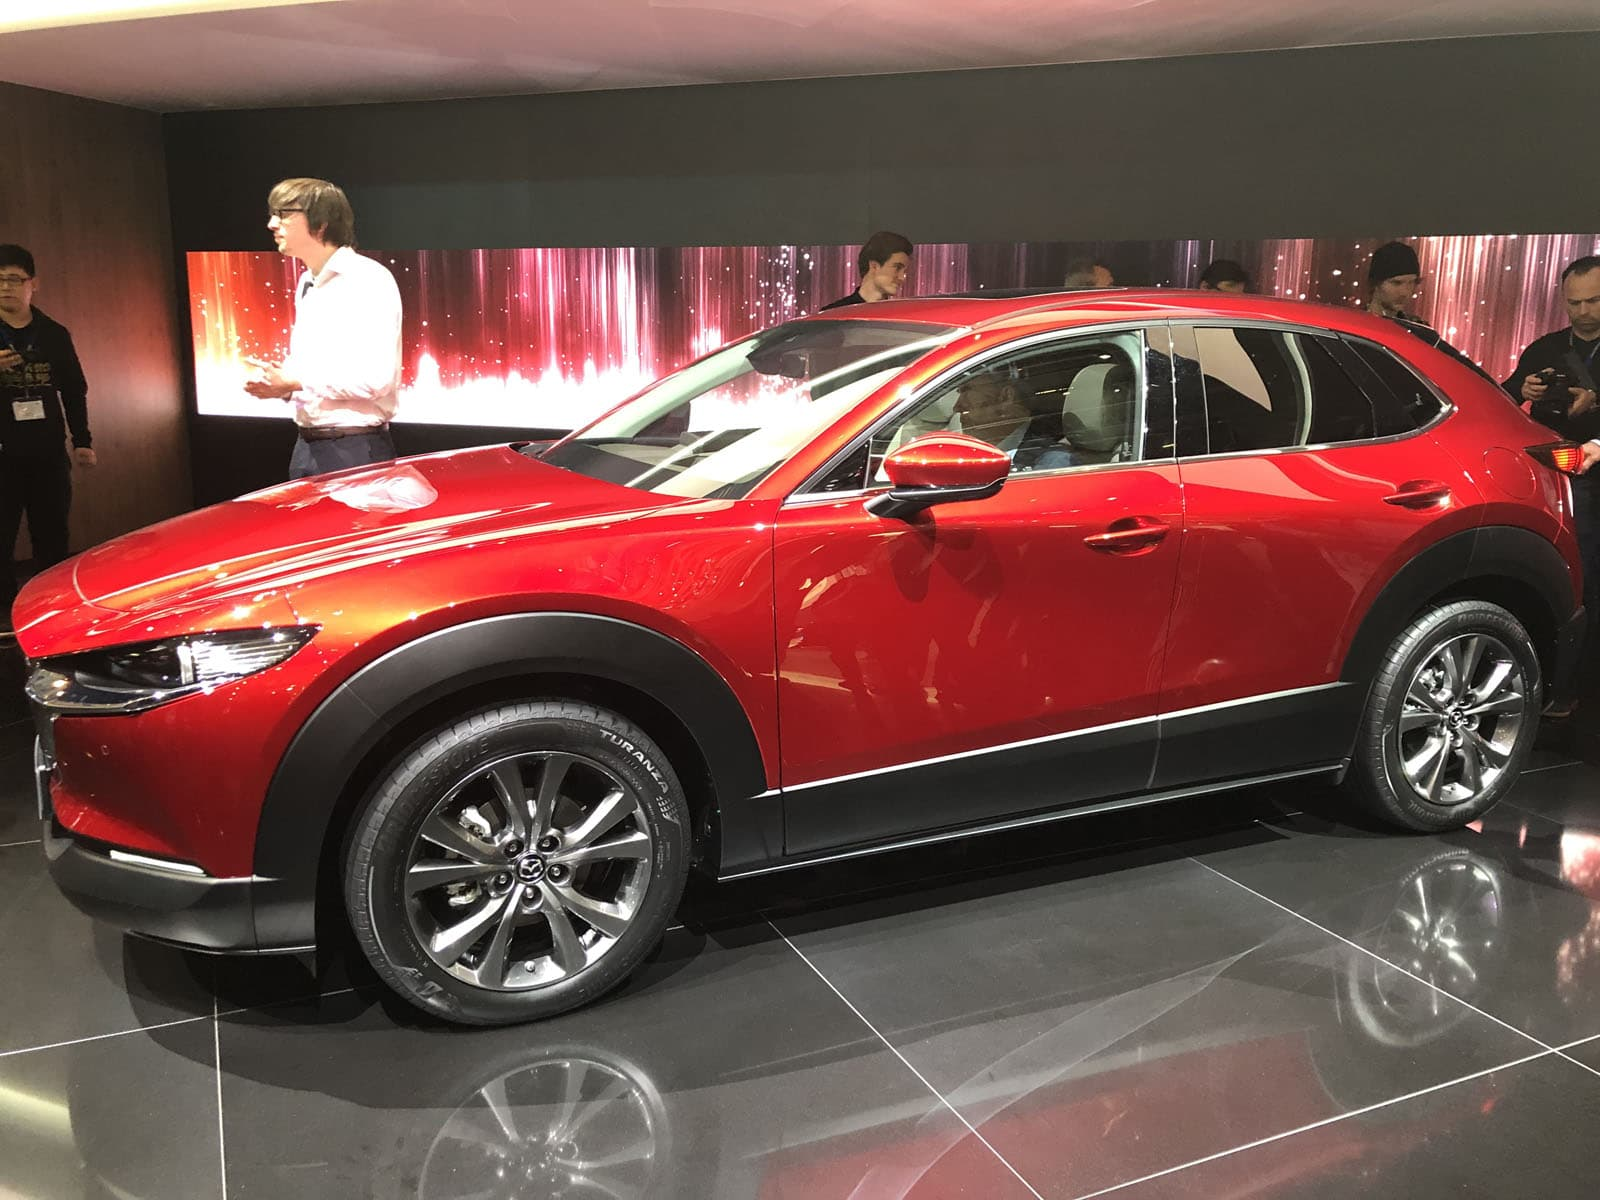 Mazda Cx 3 >> Who Does The New 2020 Mazda CX-30 Compete With? - Motor ...